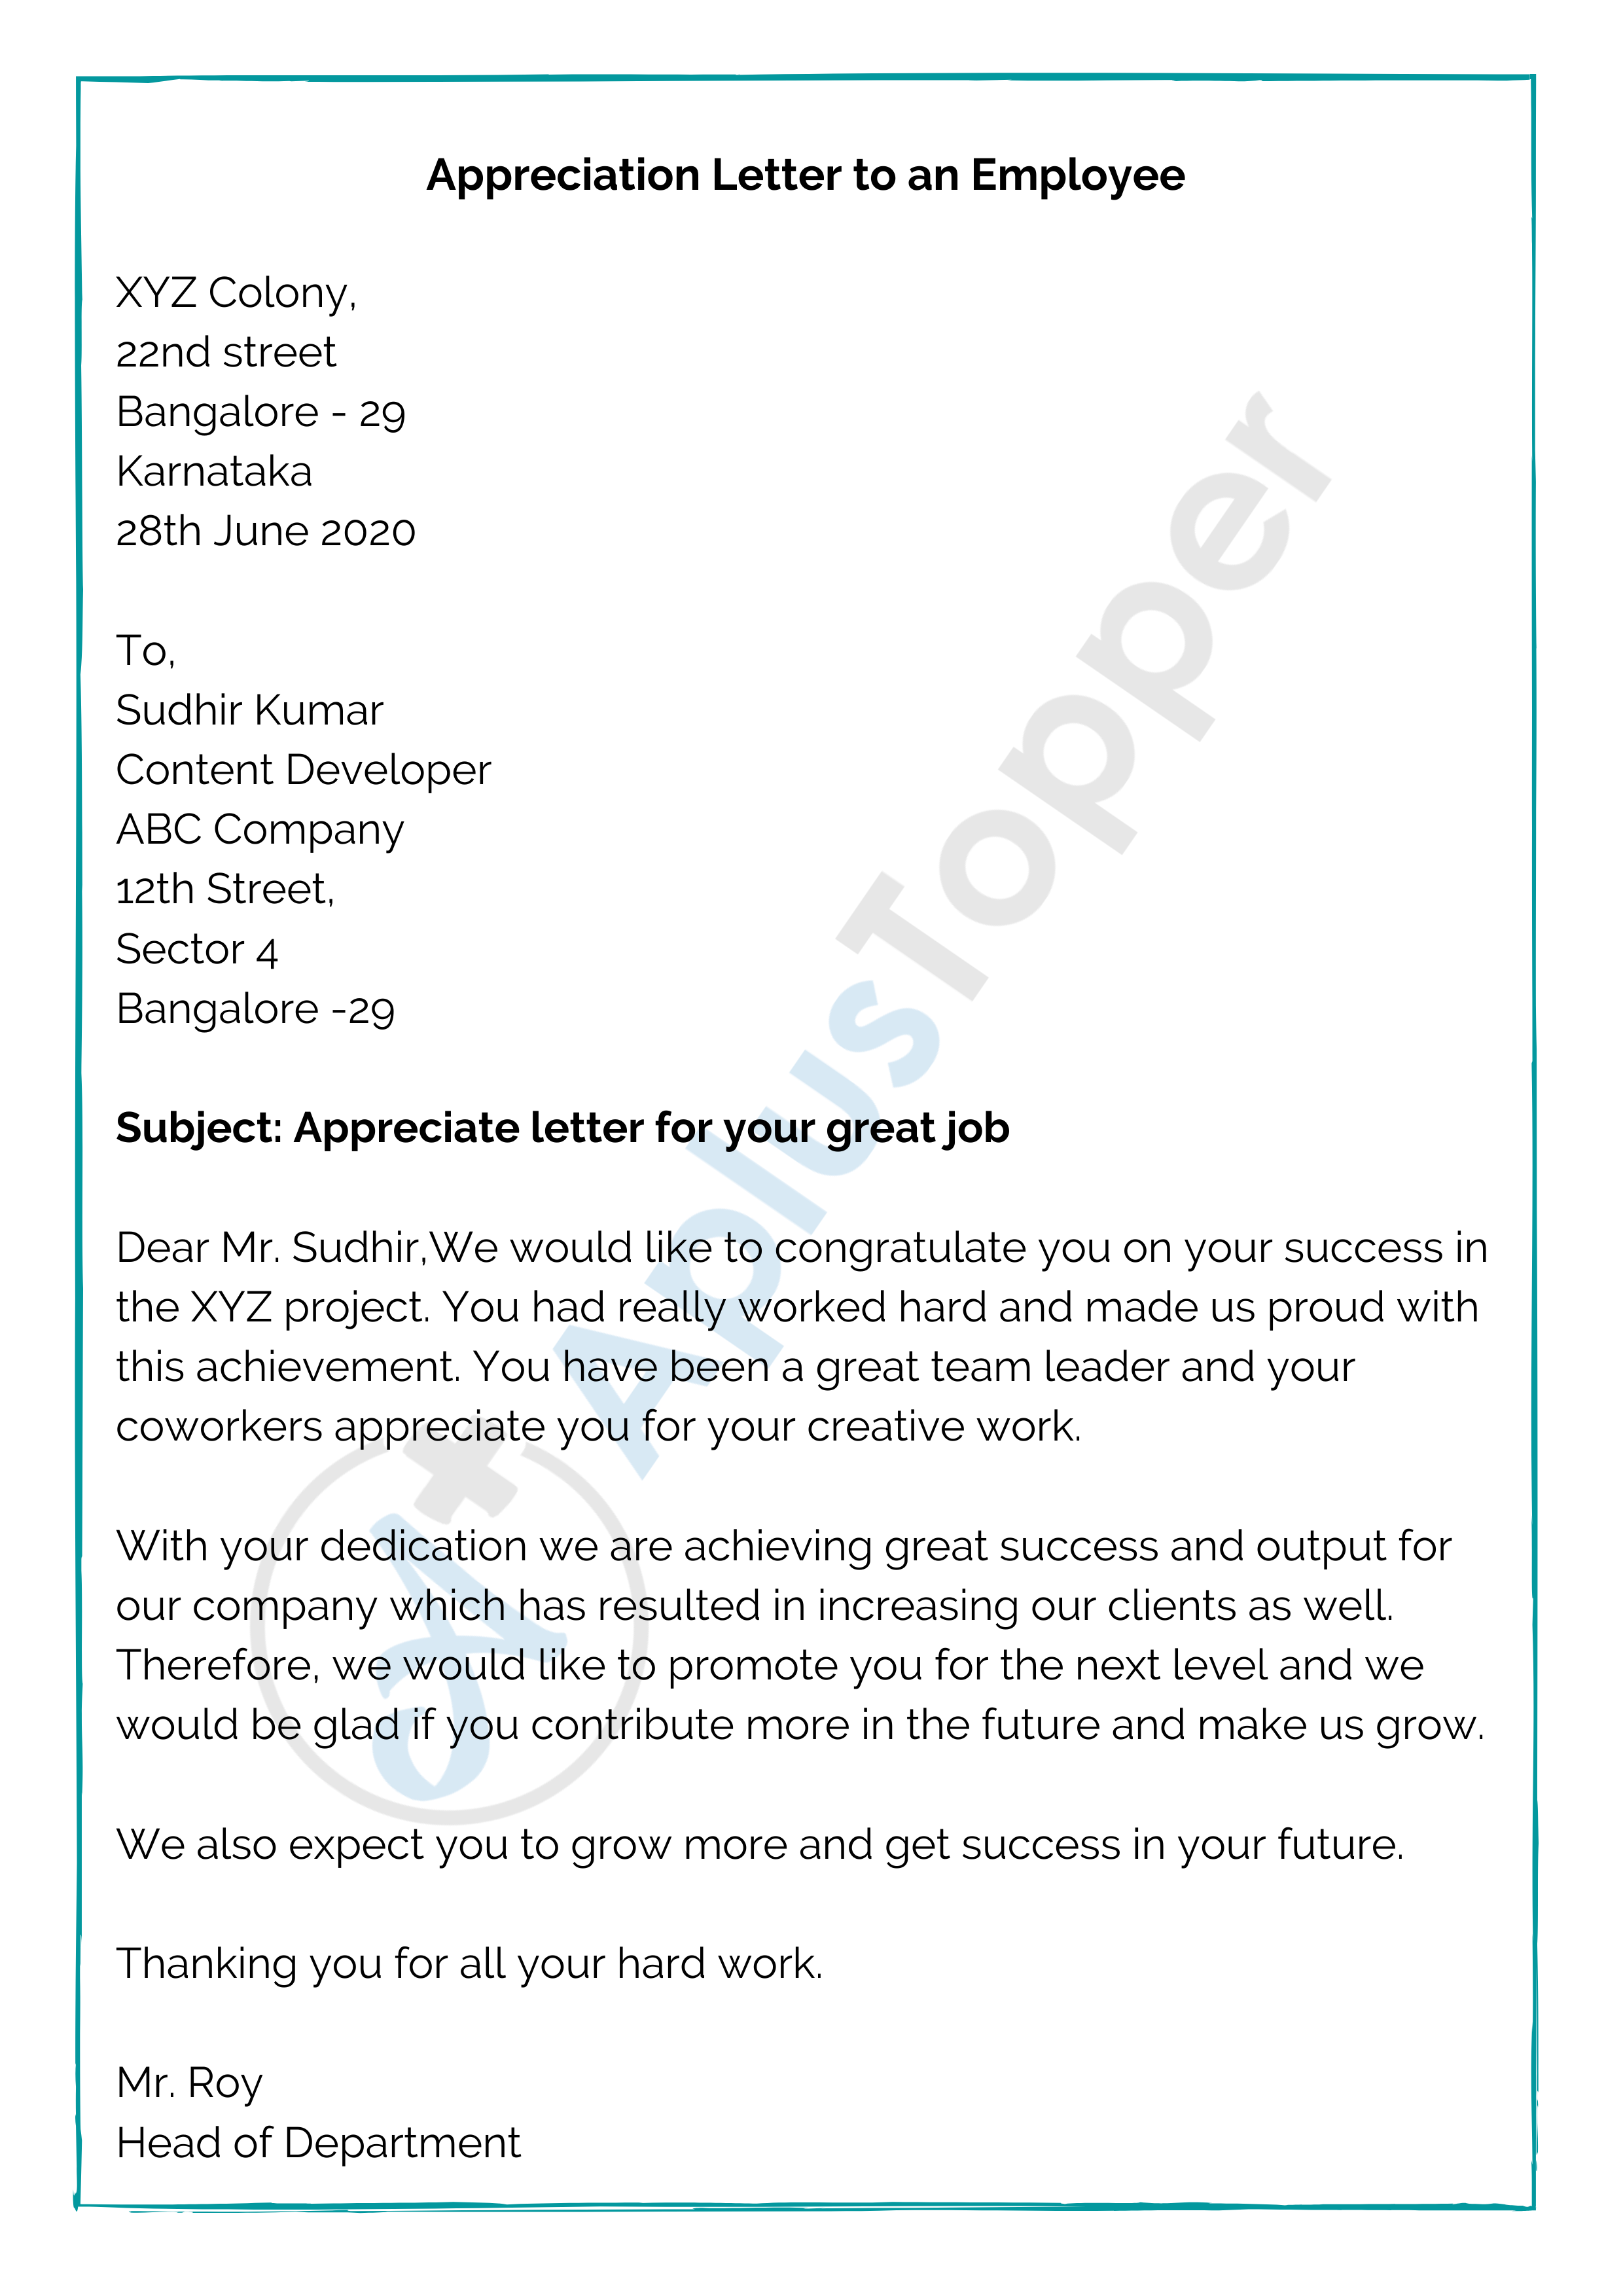 Appreciation Letter to an Employee